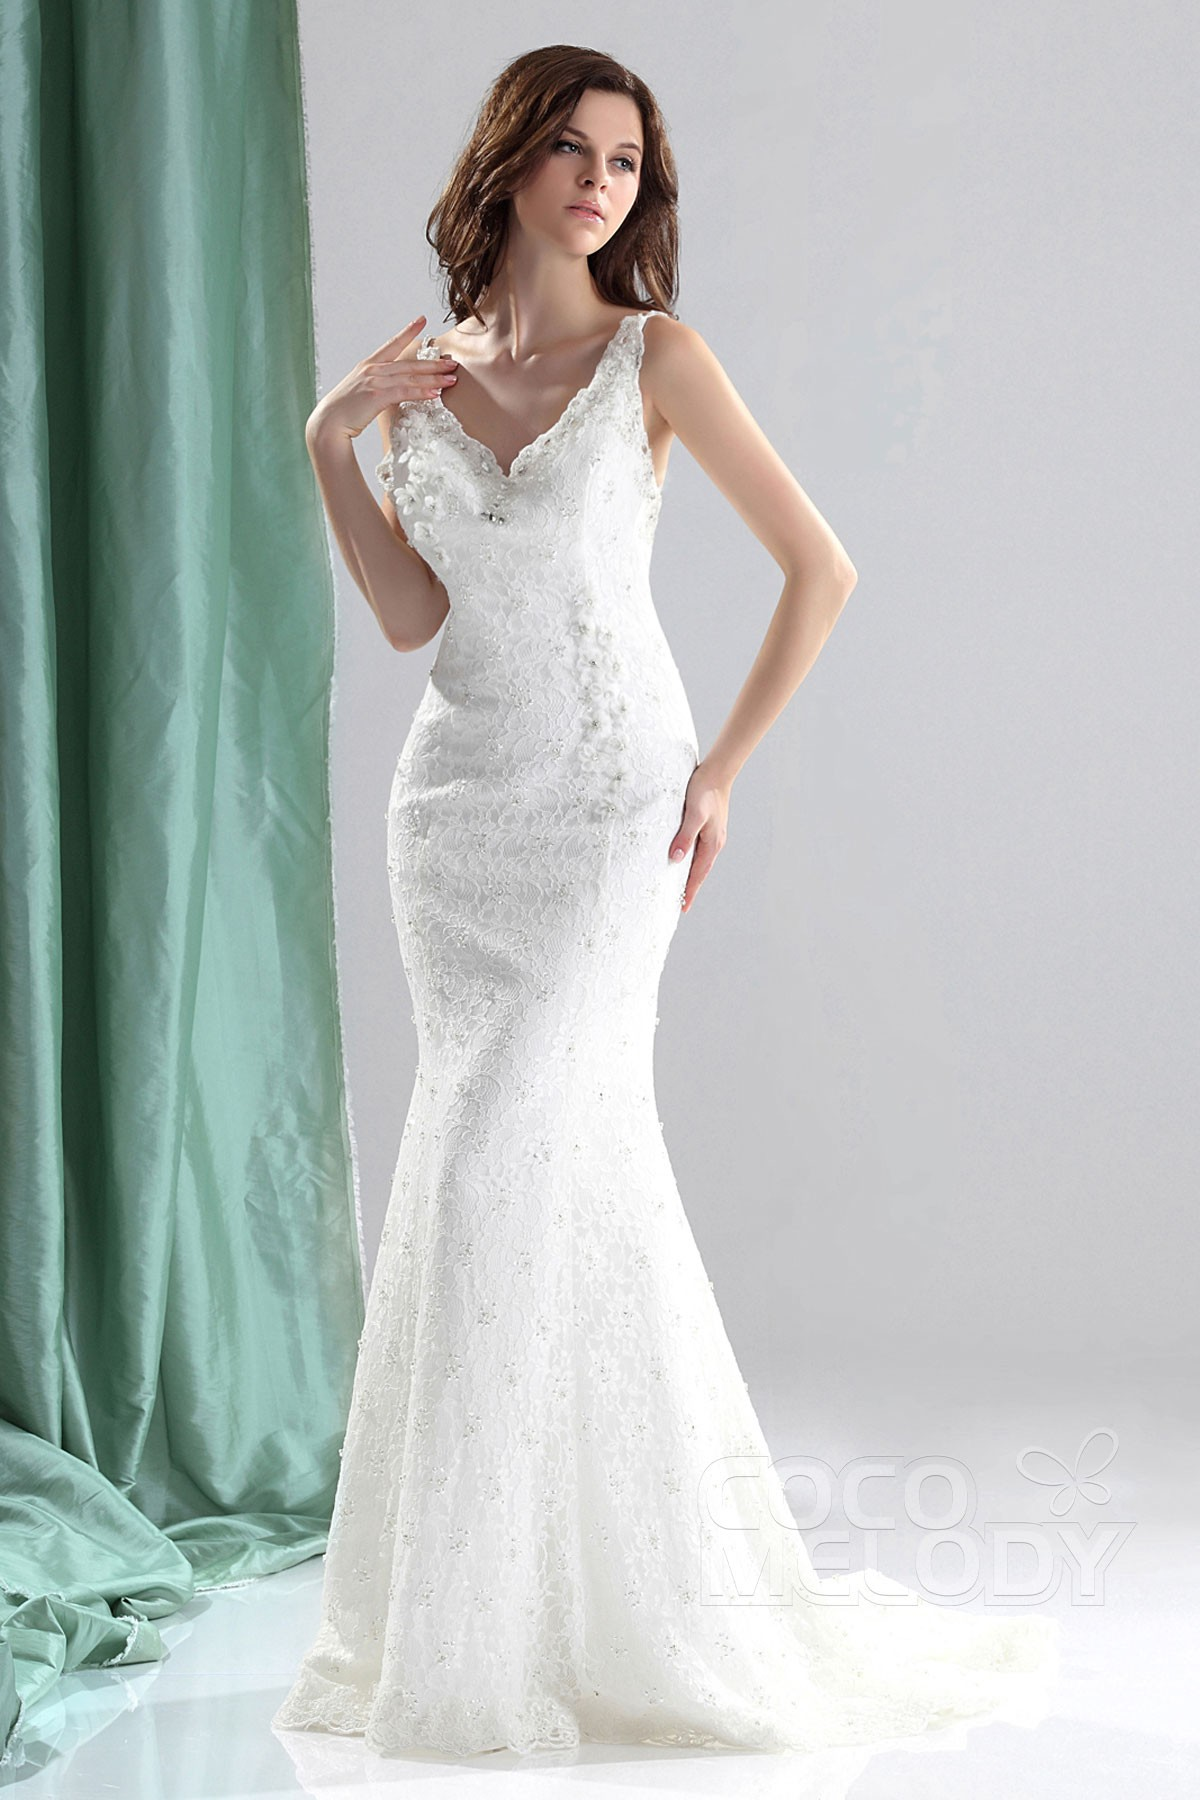 Unique Trumpet Mermaid V Neck Court Train Lace Backless Wedding Dress CWZT13011